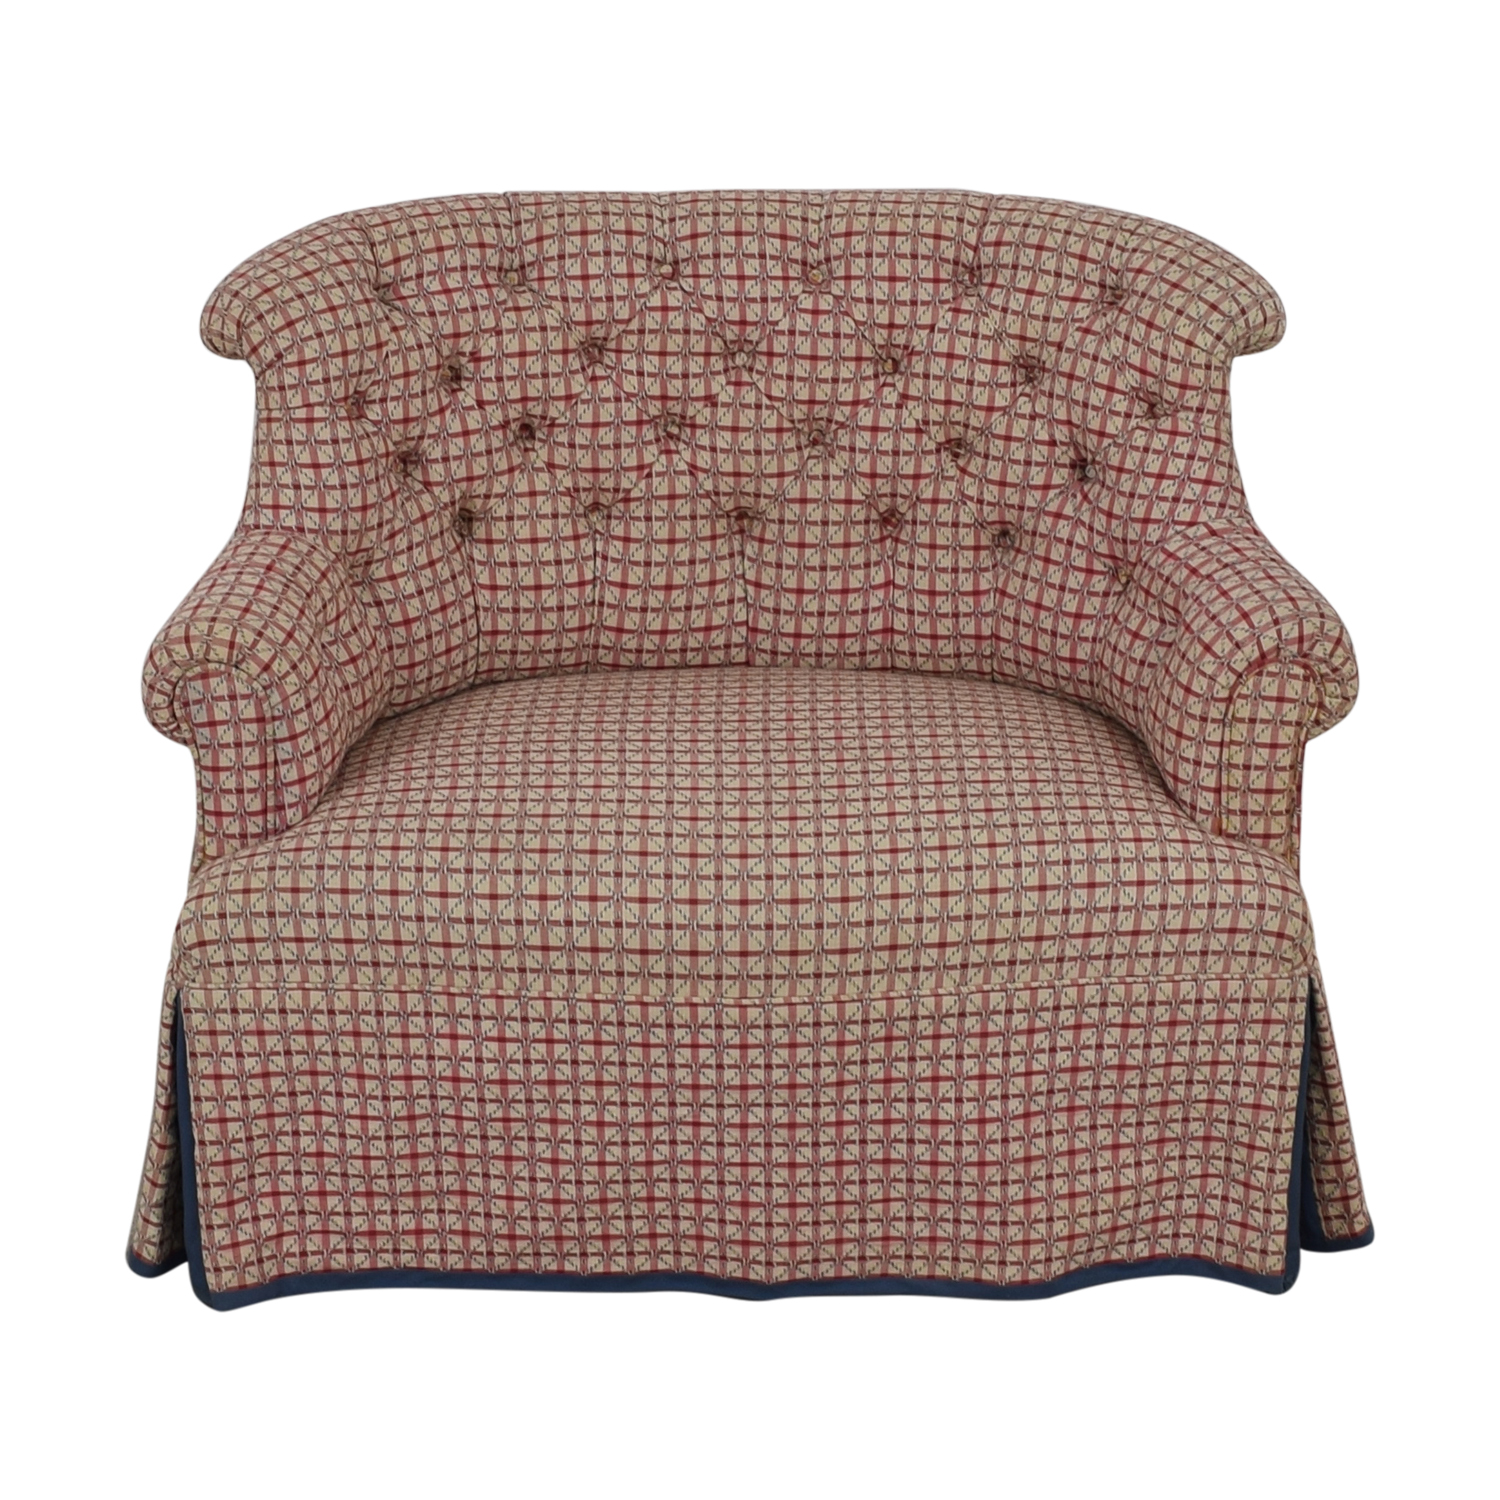 Furniture Masters Furniture Masters Red and White Plaid Tufted Accent Chair on sale